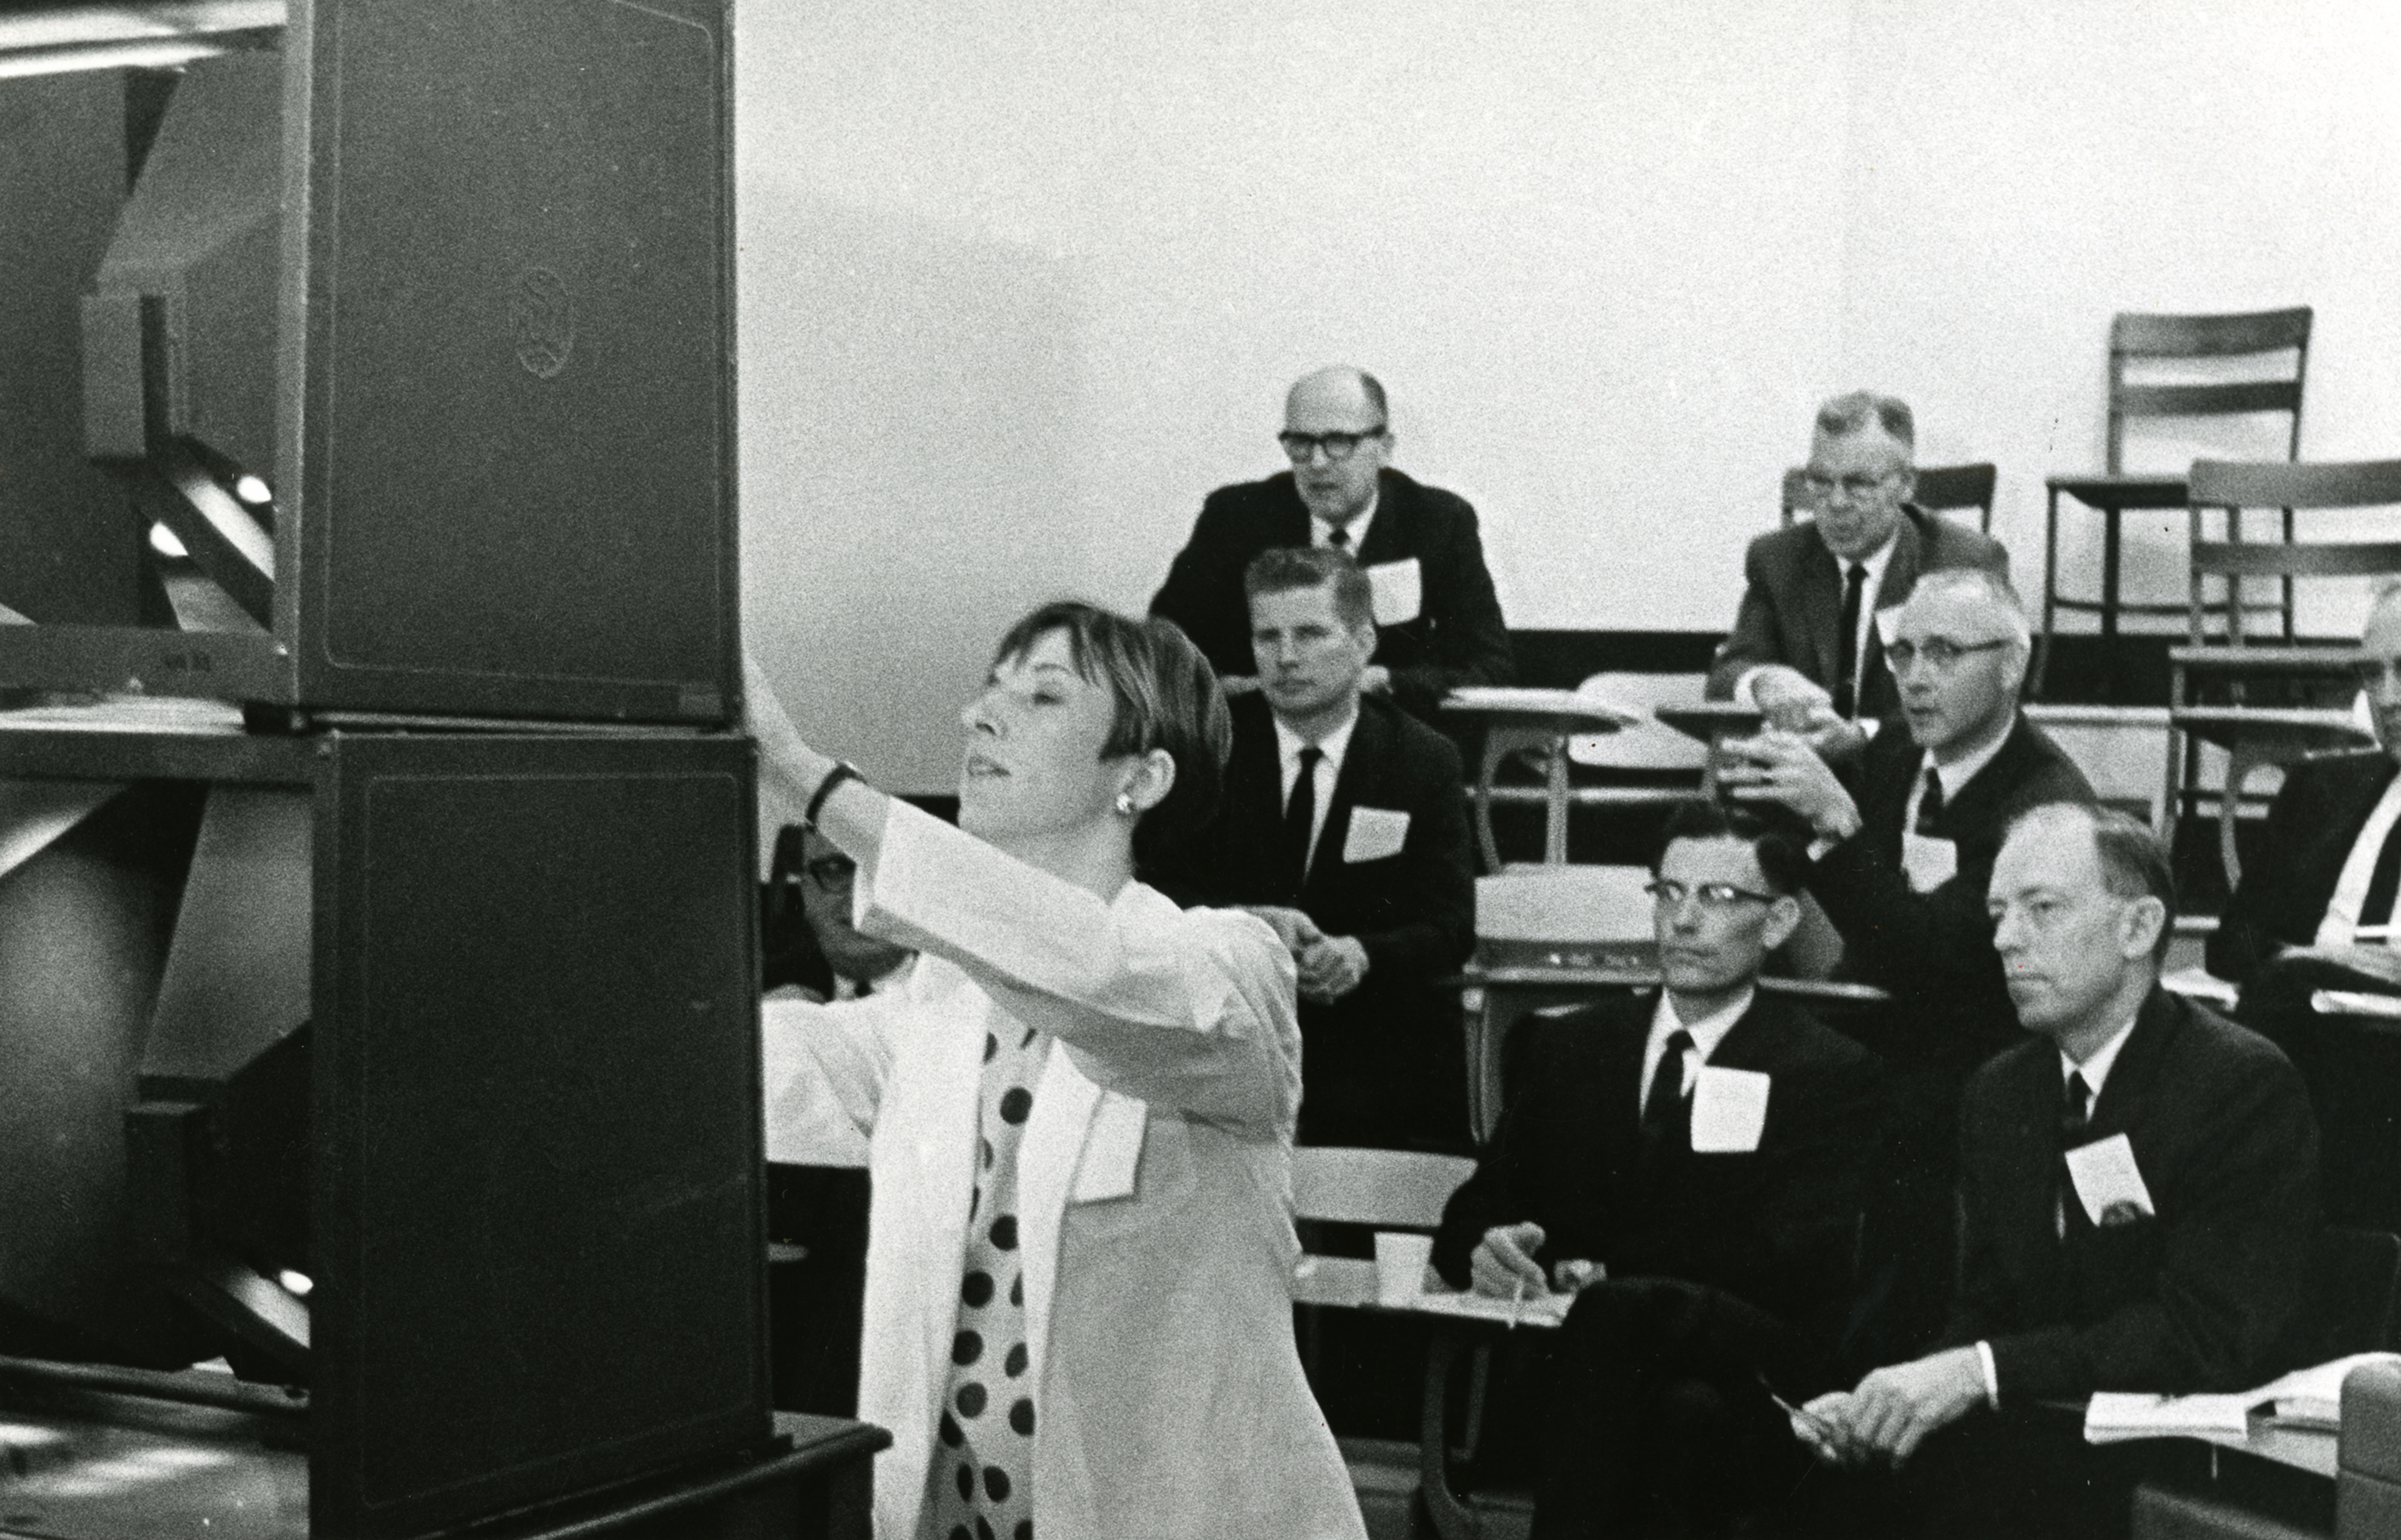 Marcia Kepler Bilbao, M.D., leads instructional demonstration, circa 1970